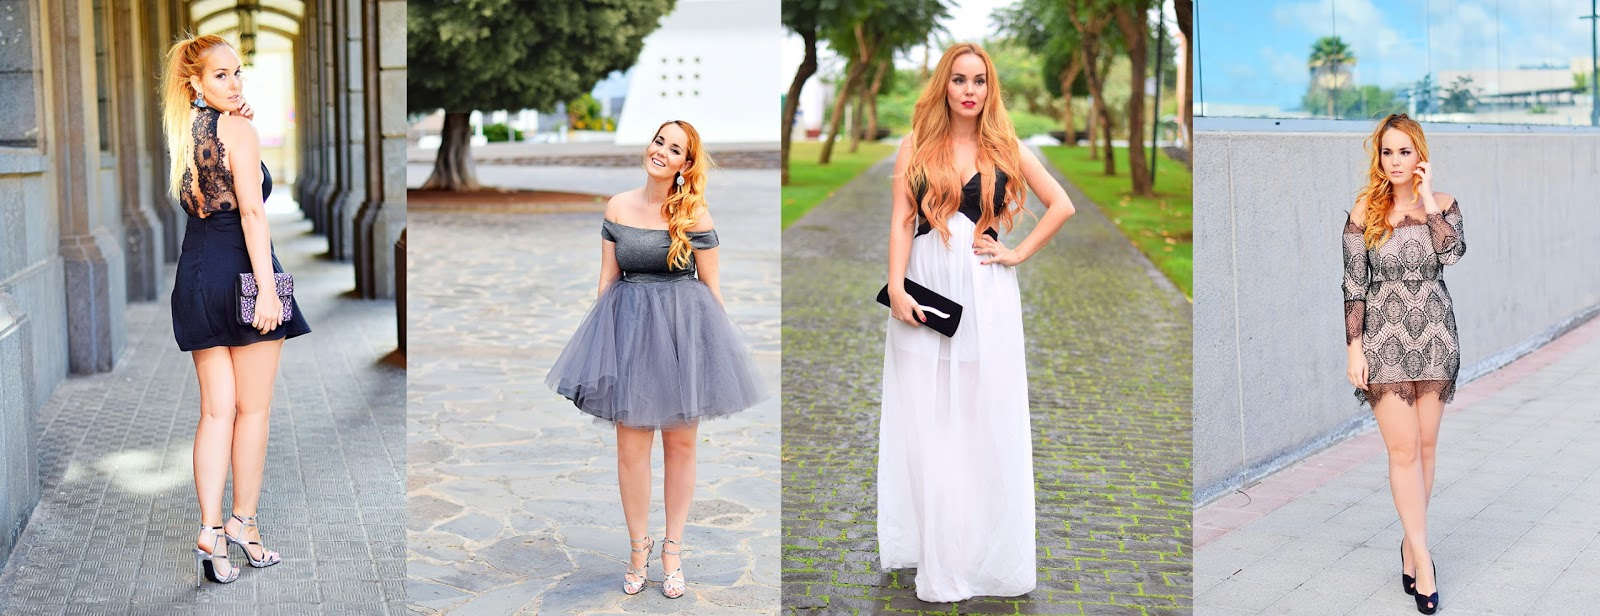 nery hdez, look para fin de año, outfir for new year's eve, vestidos de fiesta,